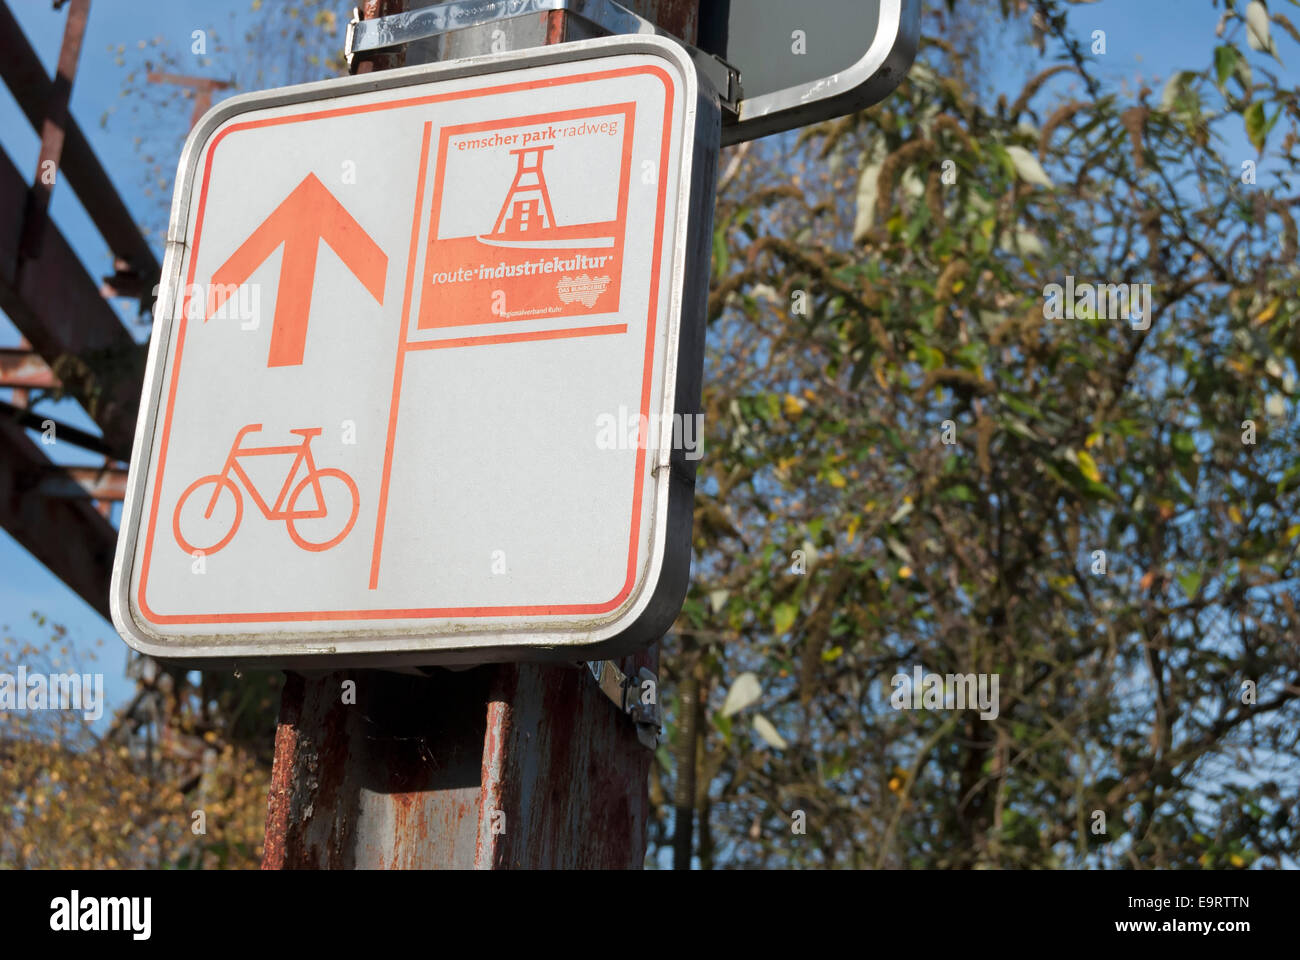 cycle route sign for the route der industriekultur, or industrial heritage route, landschaftspark, duisburg, germany - Stock Image